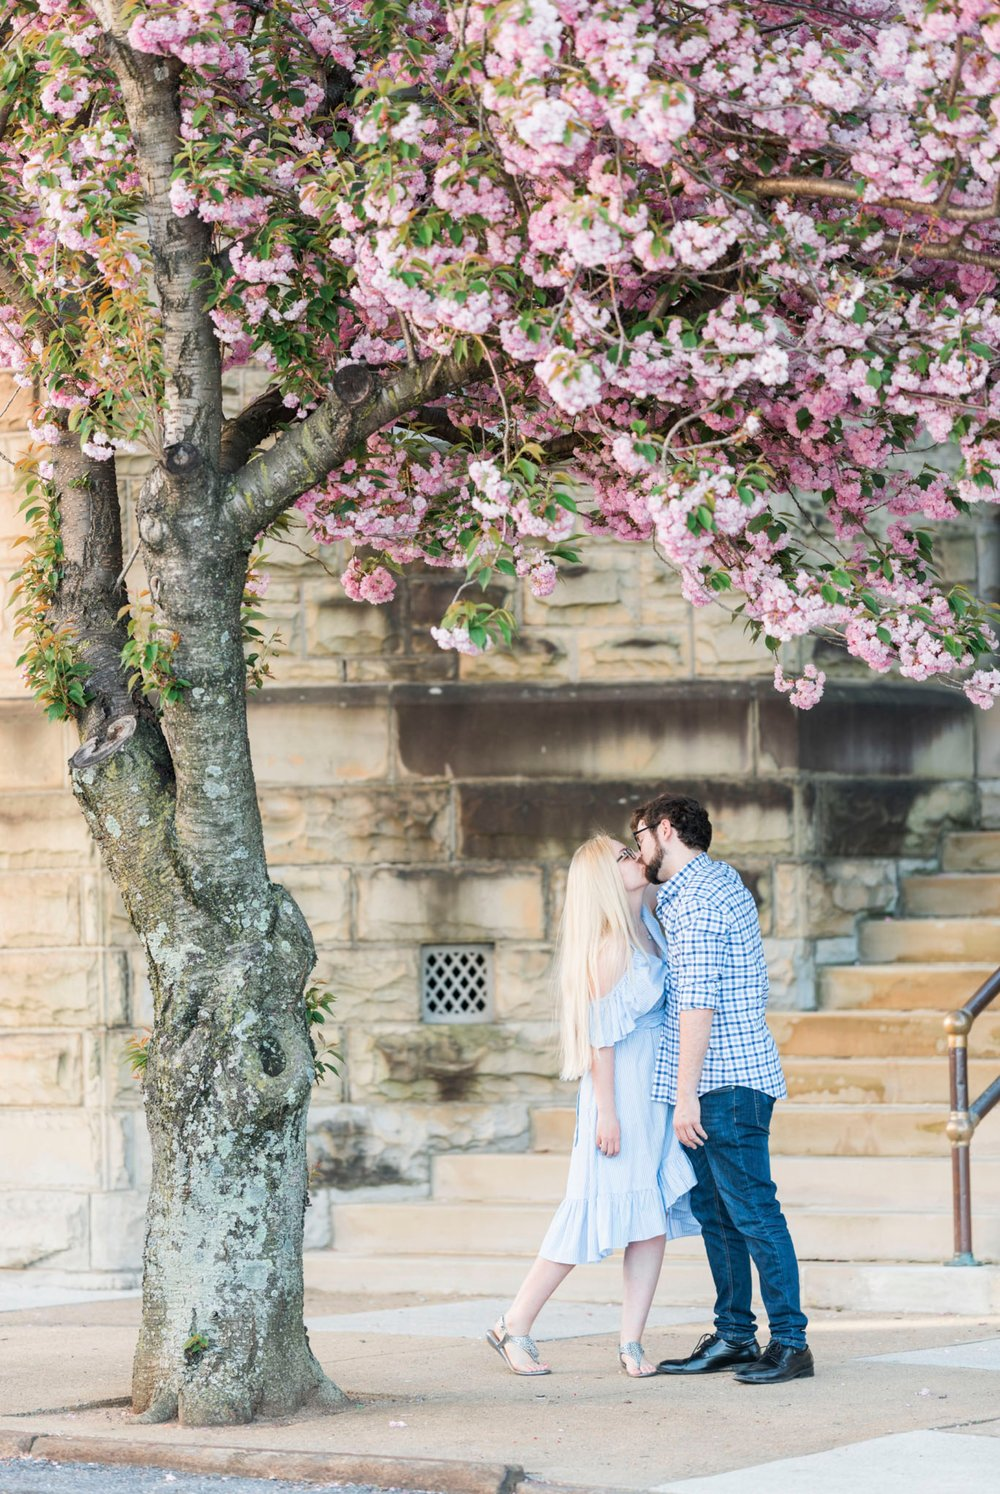 LaunceTarah_VirginiaWeddingPhotographer_EngagementSession_LynchburgVA_DowntownLynchburg_SpringEngagement 2.jpg